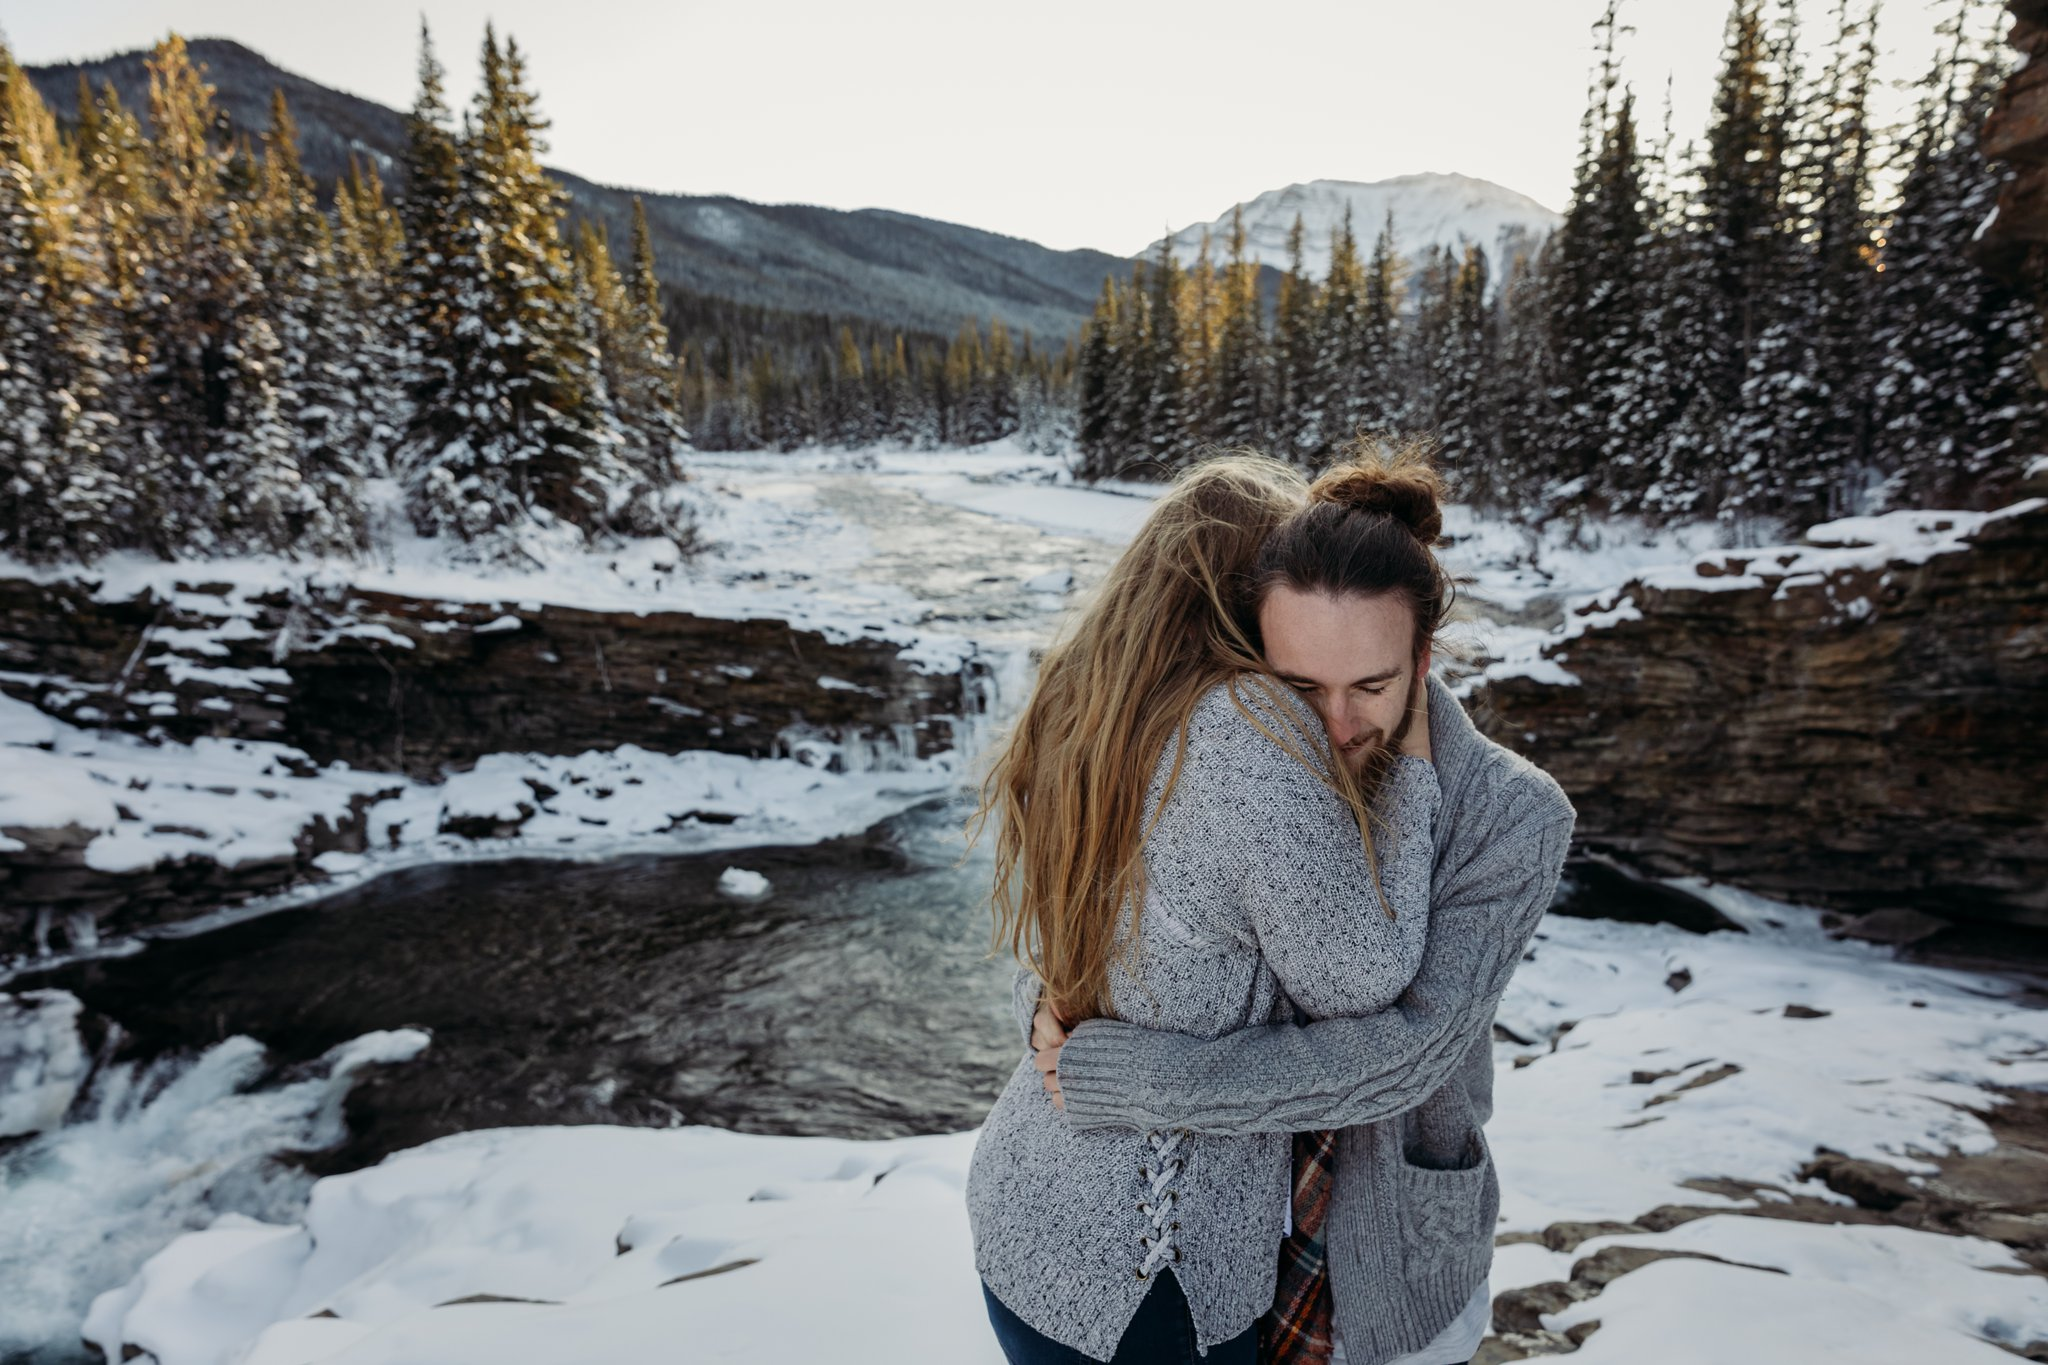 AshleyDaphnePhotography Calgary Photographer Wedding Engagement Sheep River Provincial Park Photos Kananskis Rocky Mountain Canmore Photographer_0052.jpg